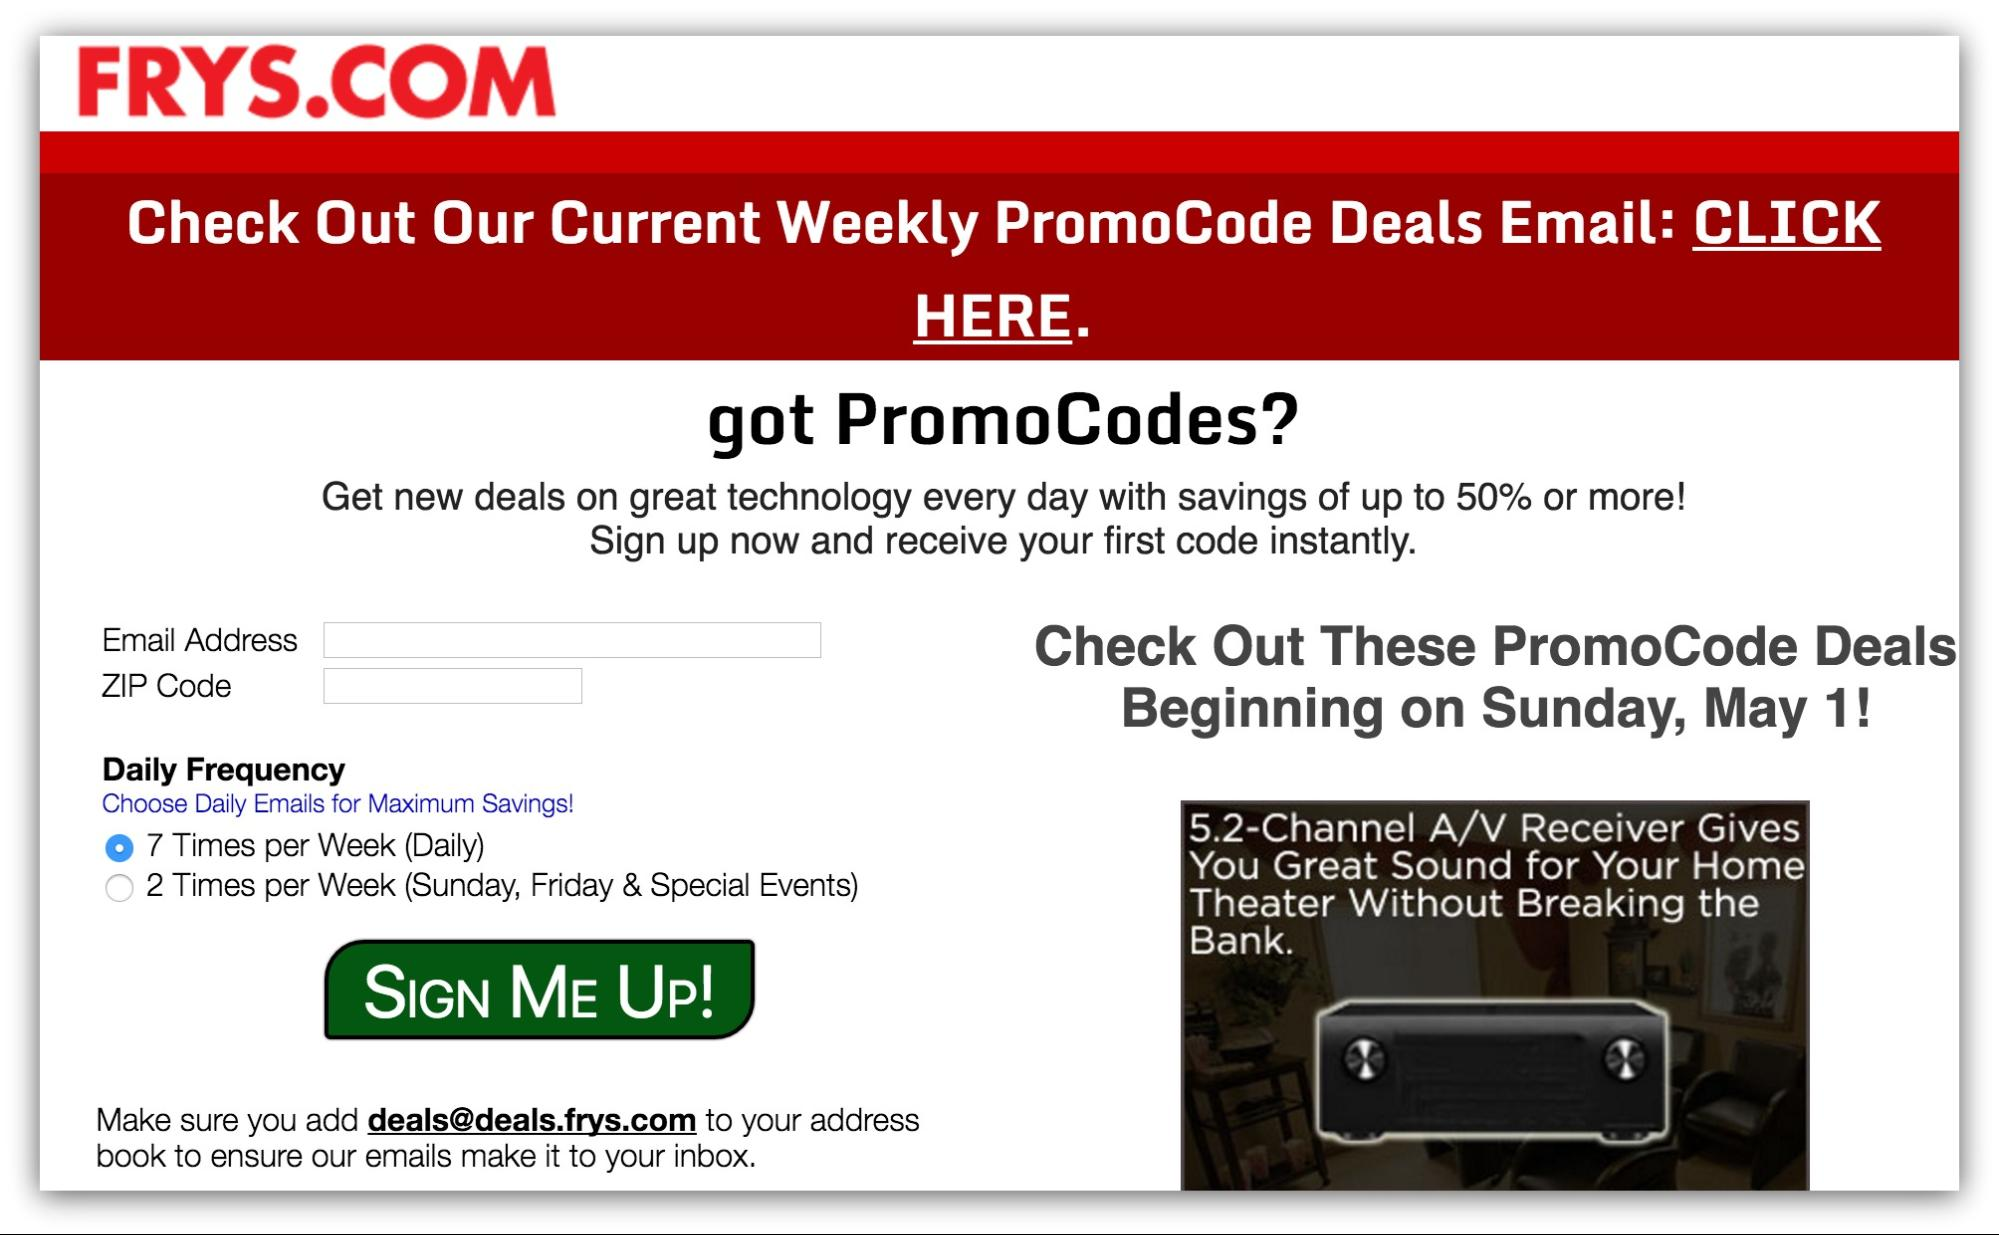 Screenshot showing an email subscription box on frys.com